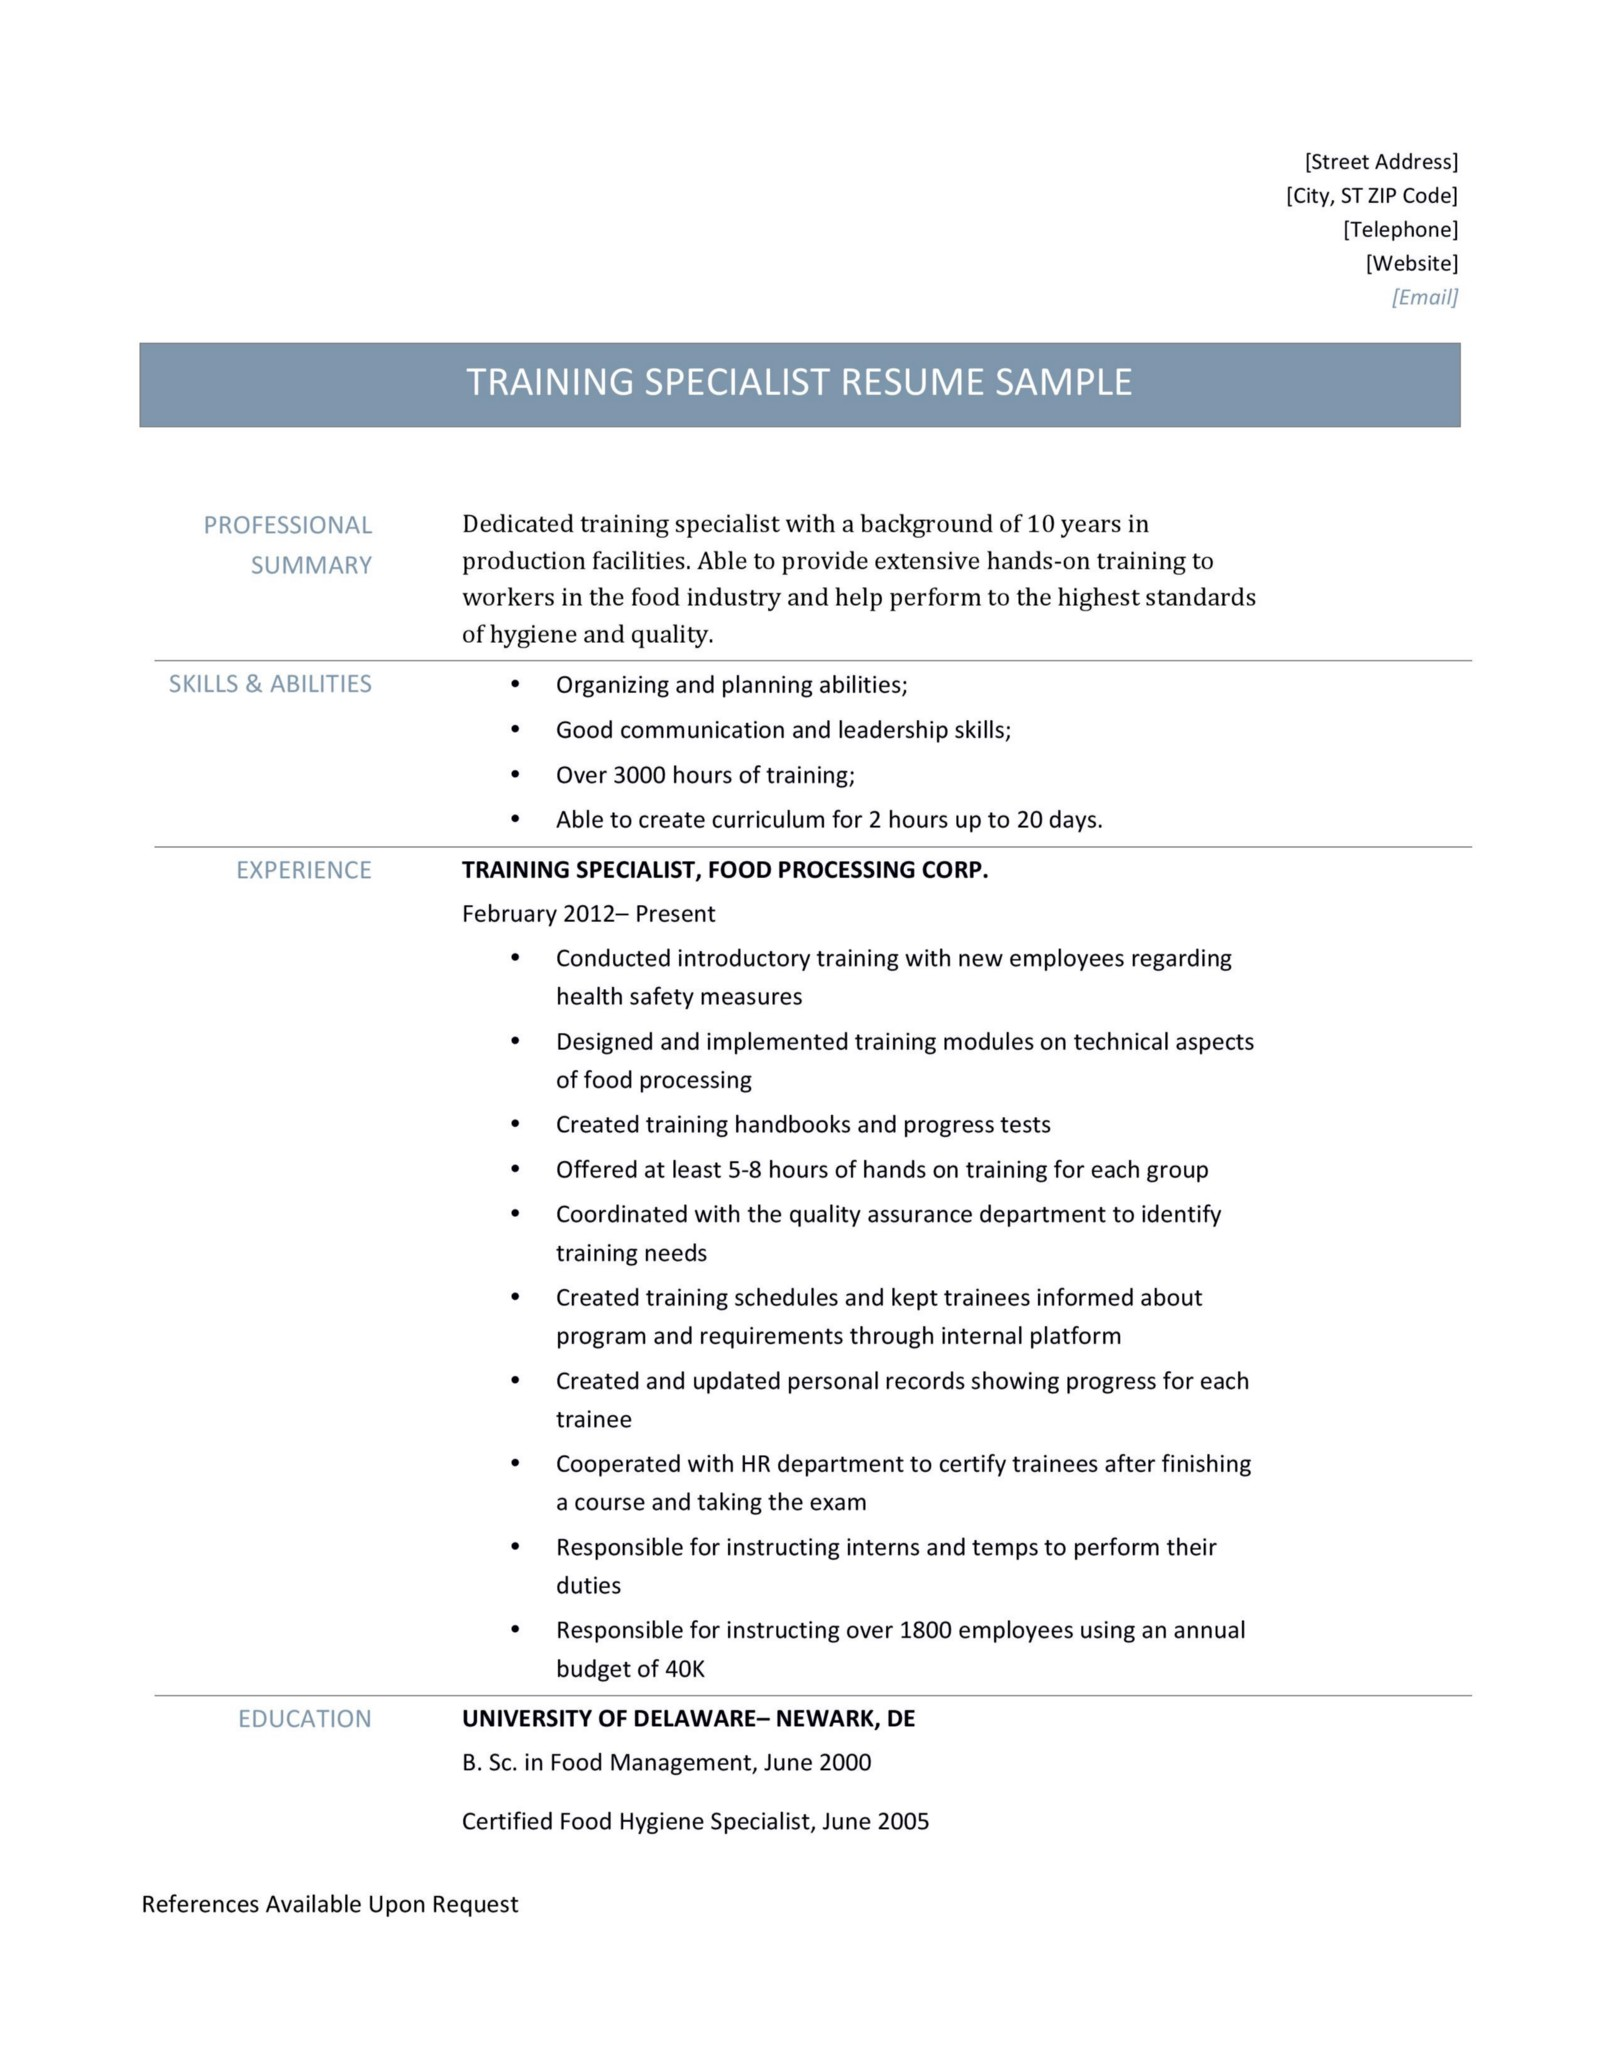 Training Specialist Resume Page 001